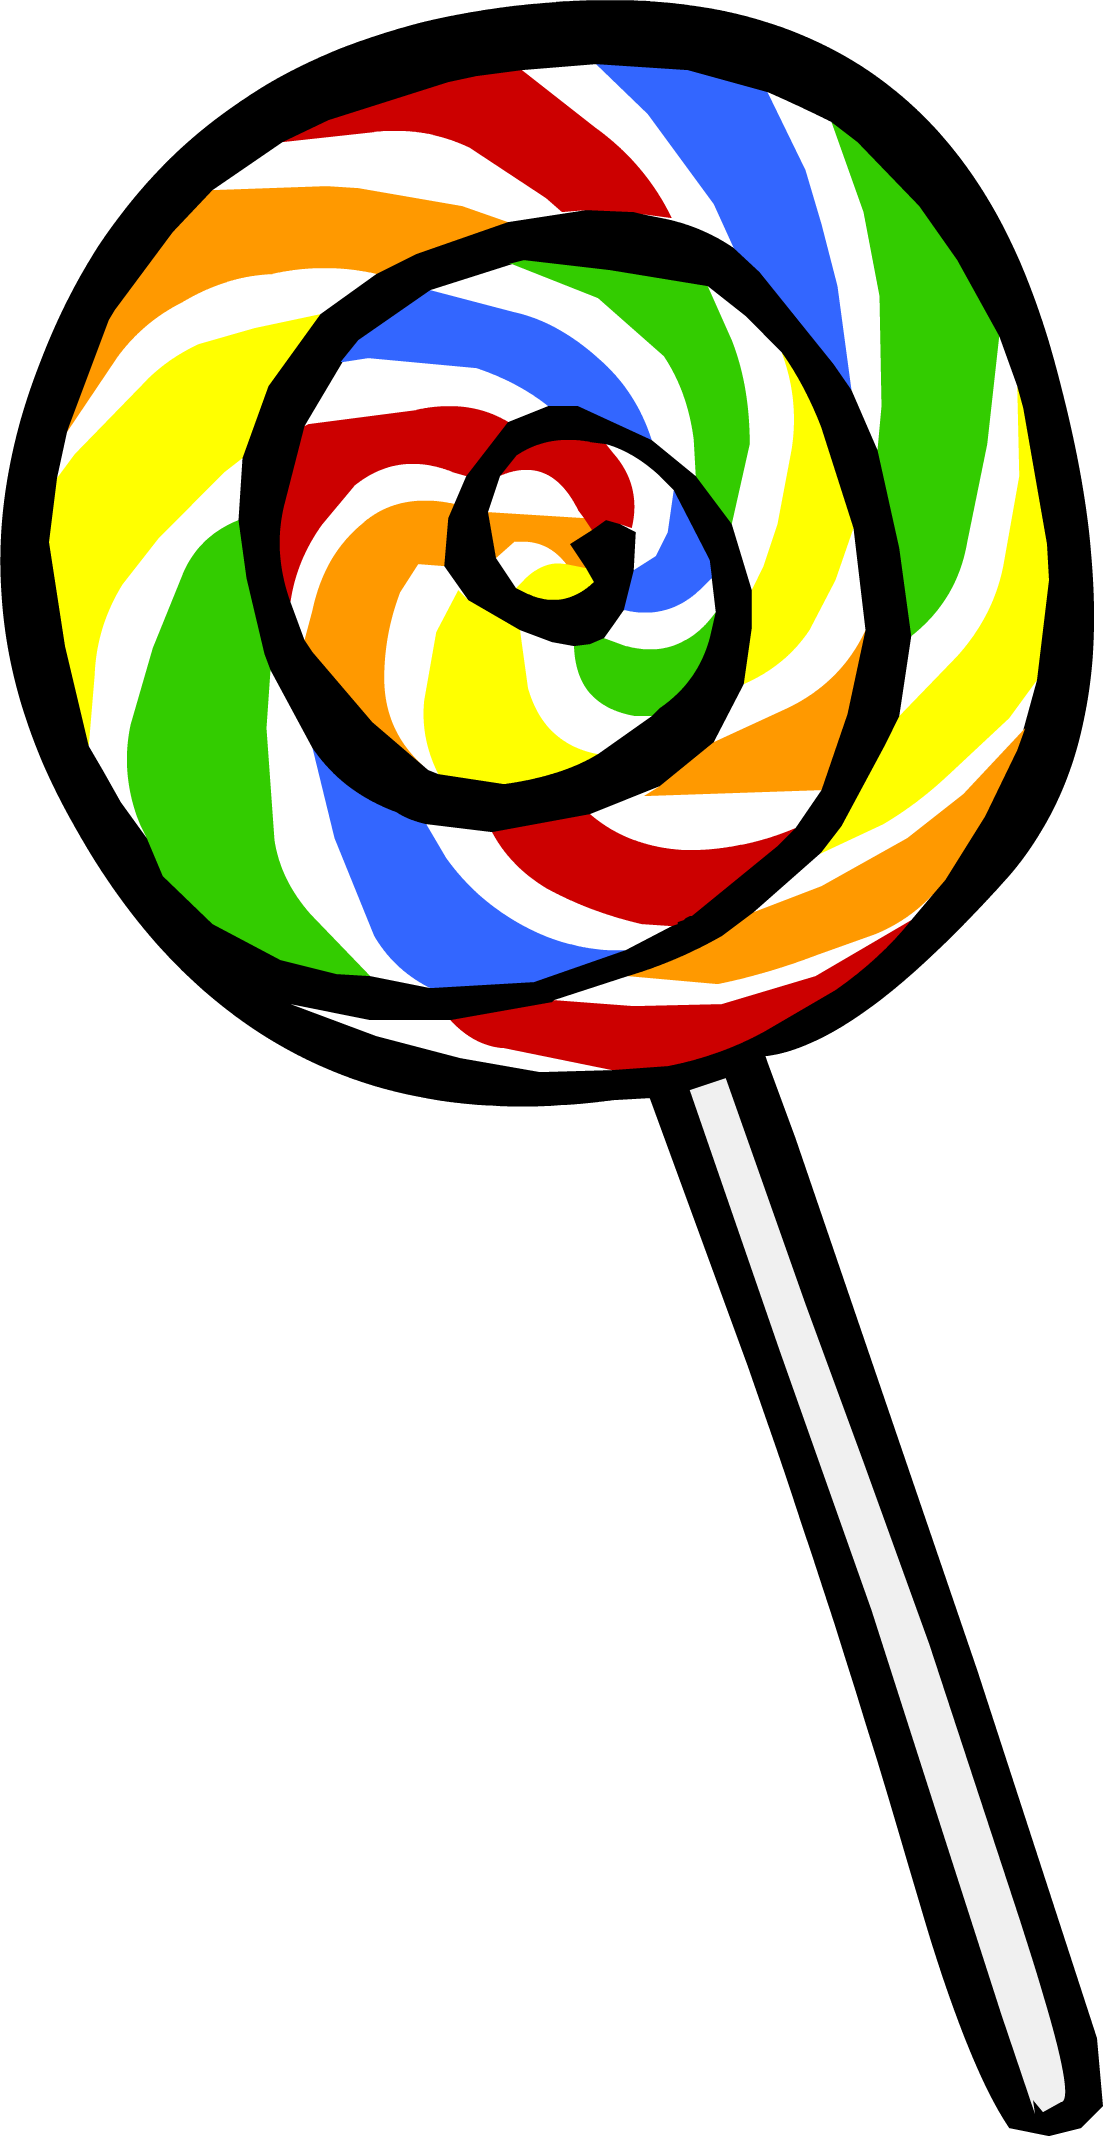 Lollipop - Club Penguin Wiki - The free, editable encyclopedia about ...